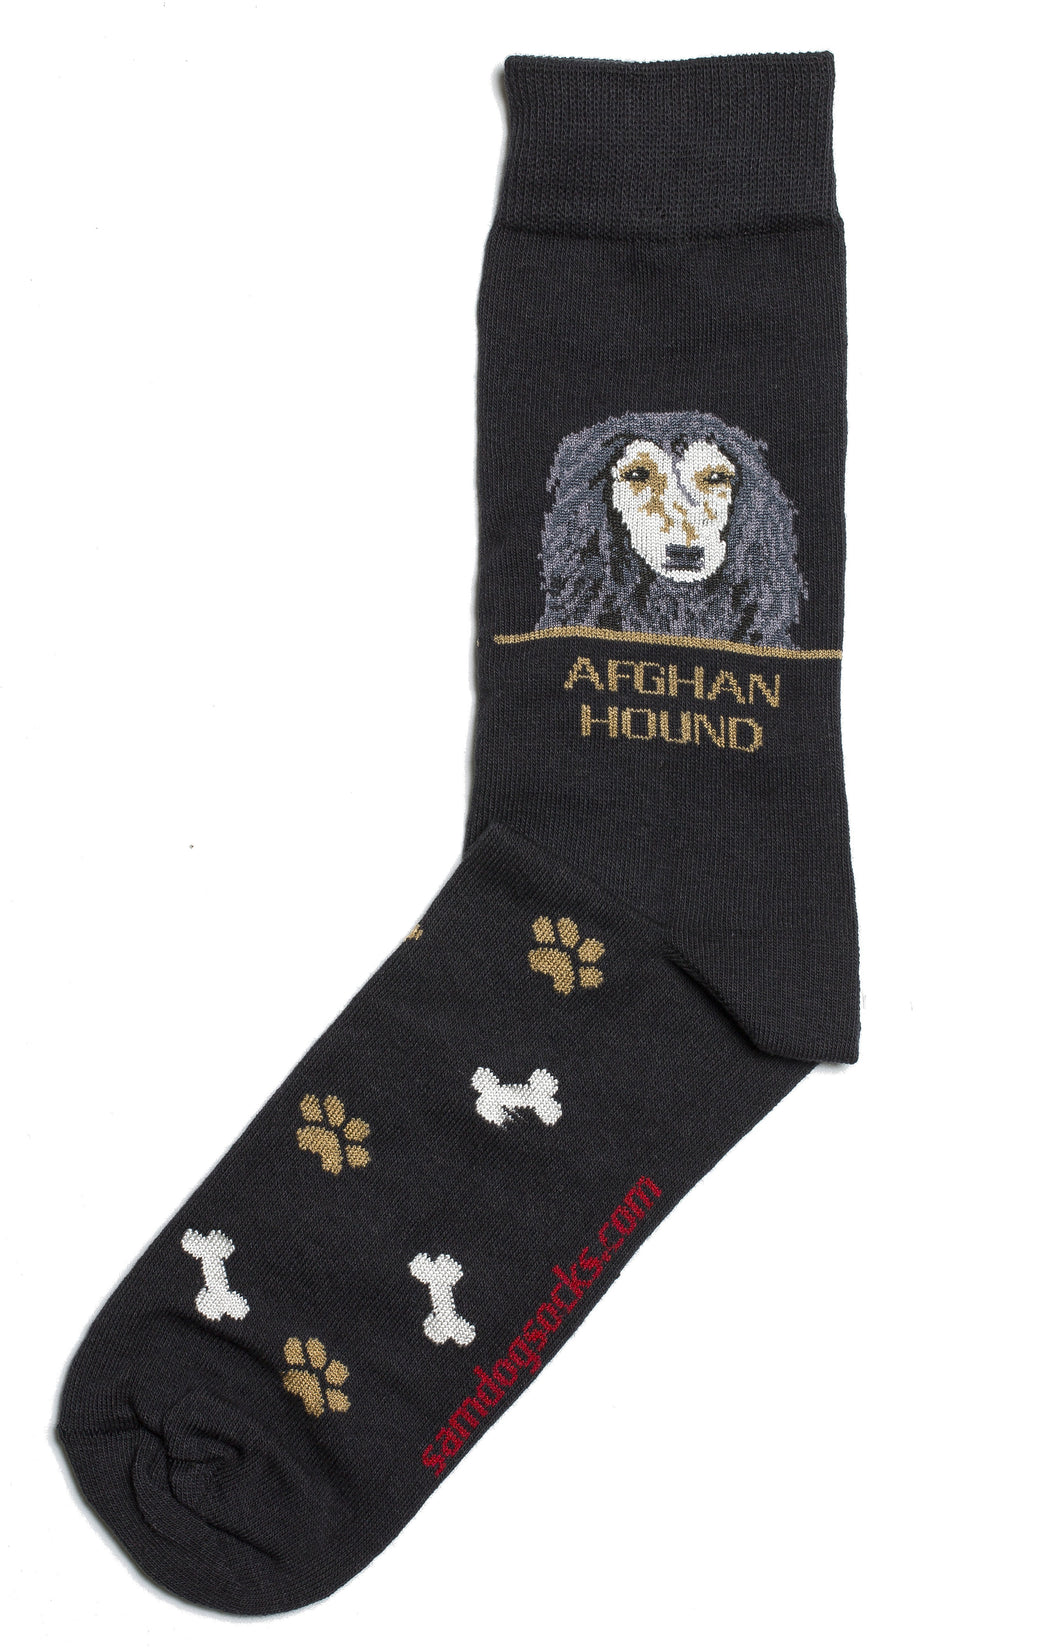 Afghan Hound Dog Socks Mens - samnoveltysocks.com